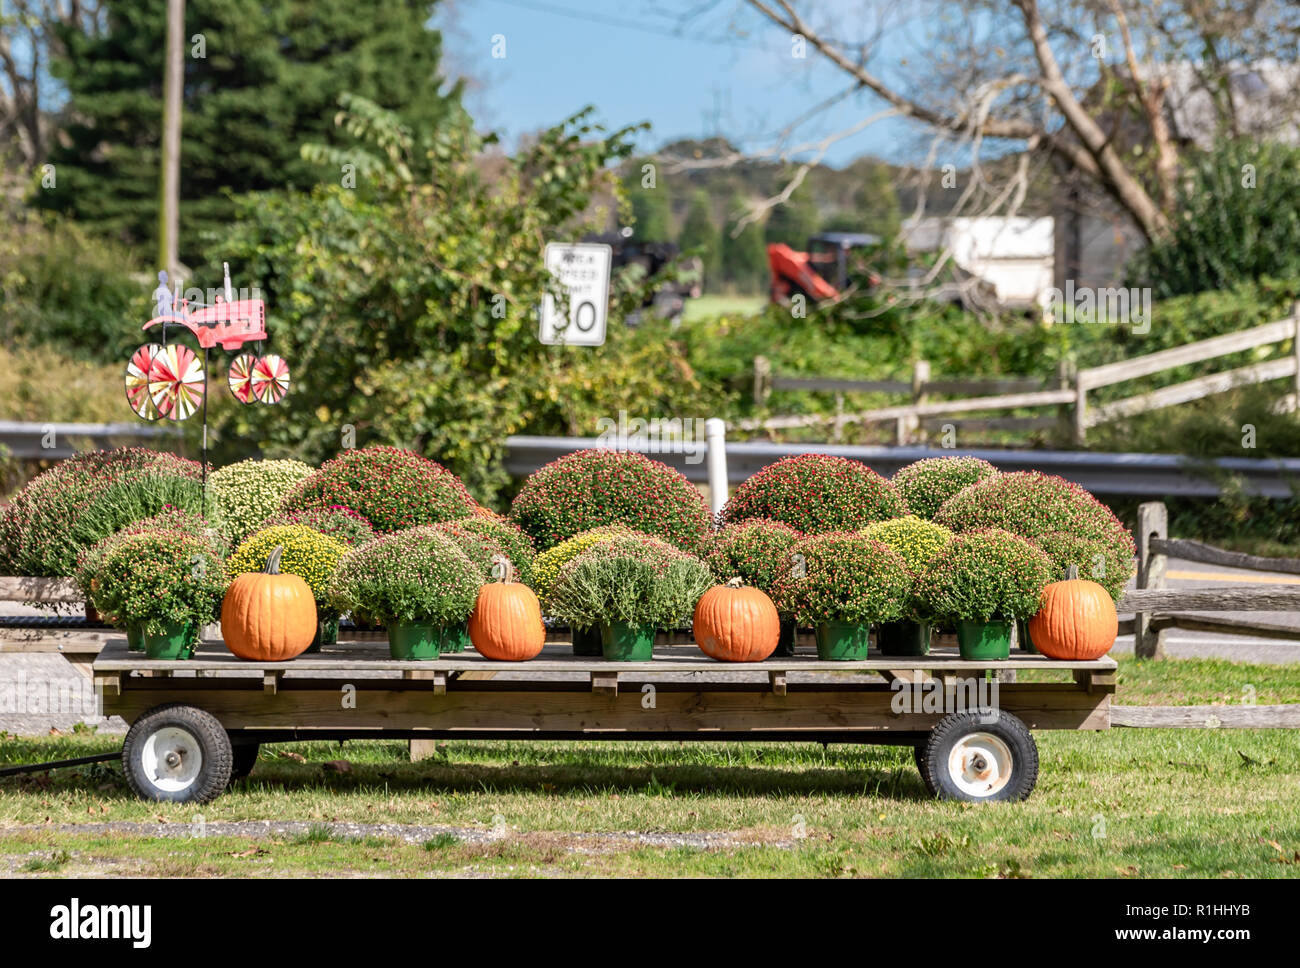 wagon with pumpkins and mums in East Hampton, NY - Stock Image